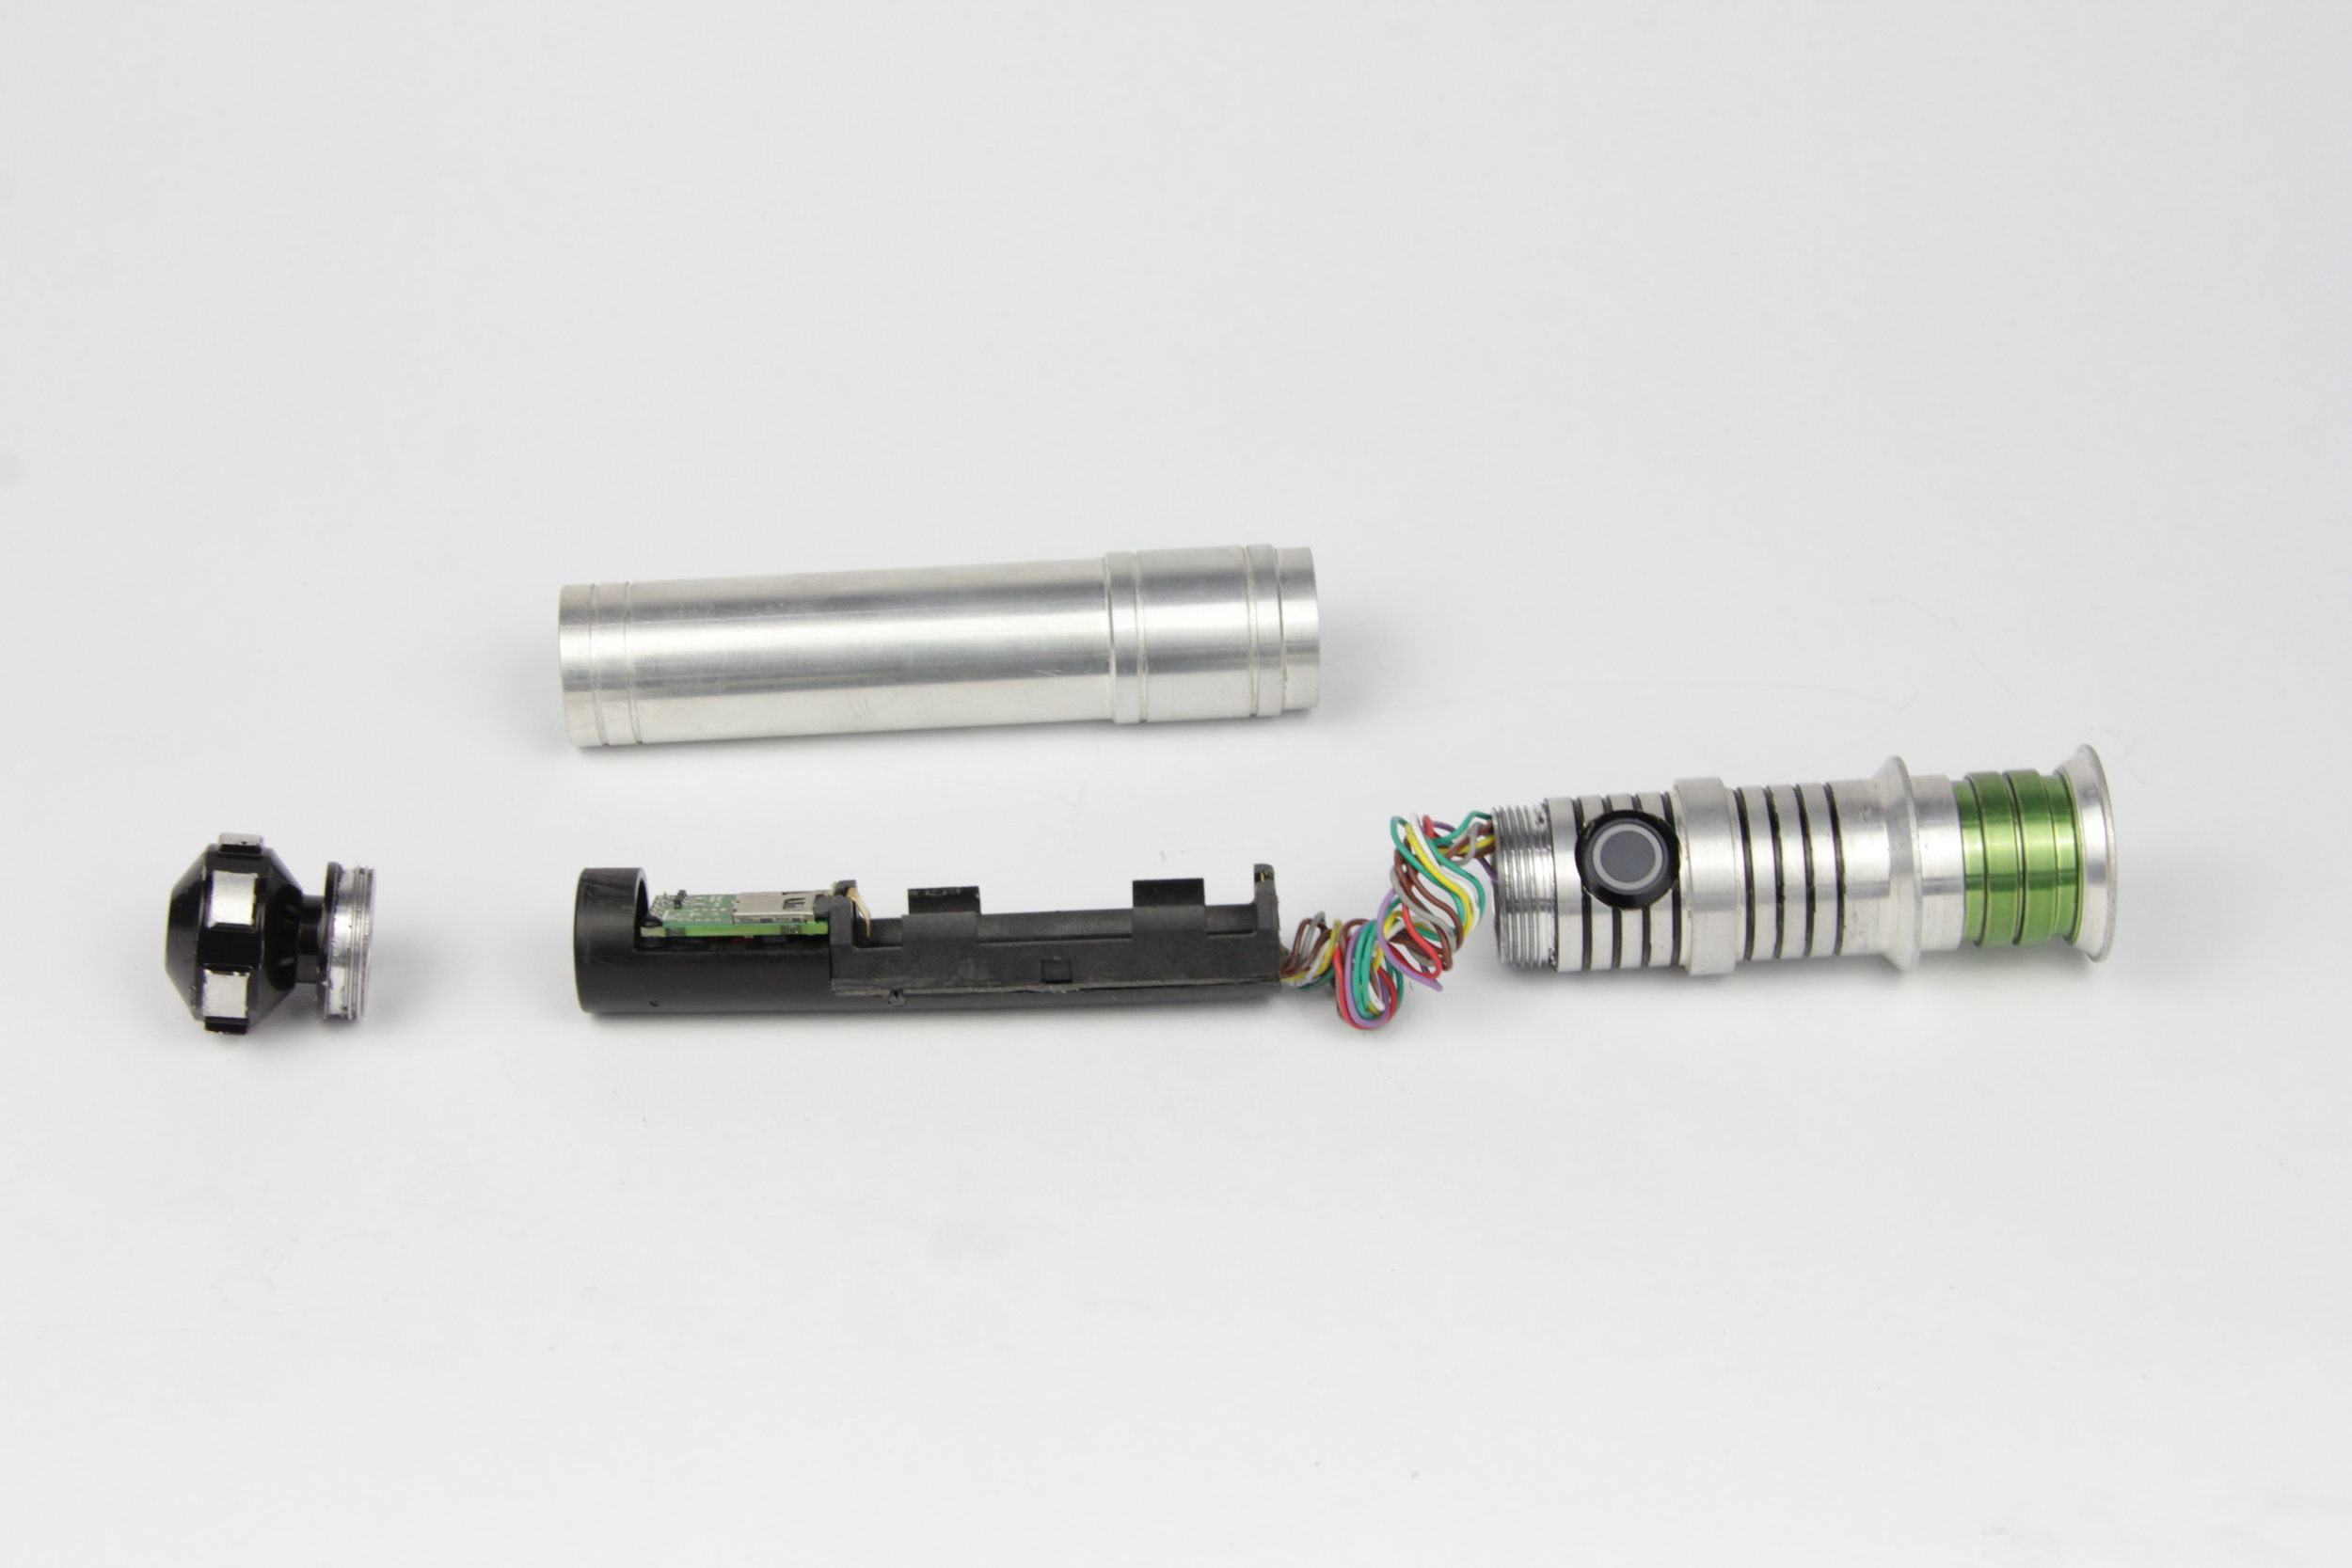 Fully opened saber, notice tightly wound wiring that is exposed when changing the battery